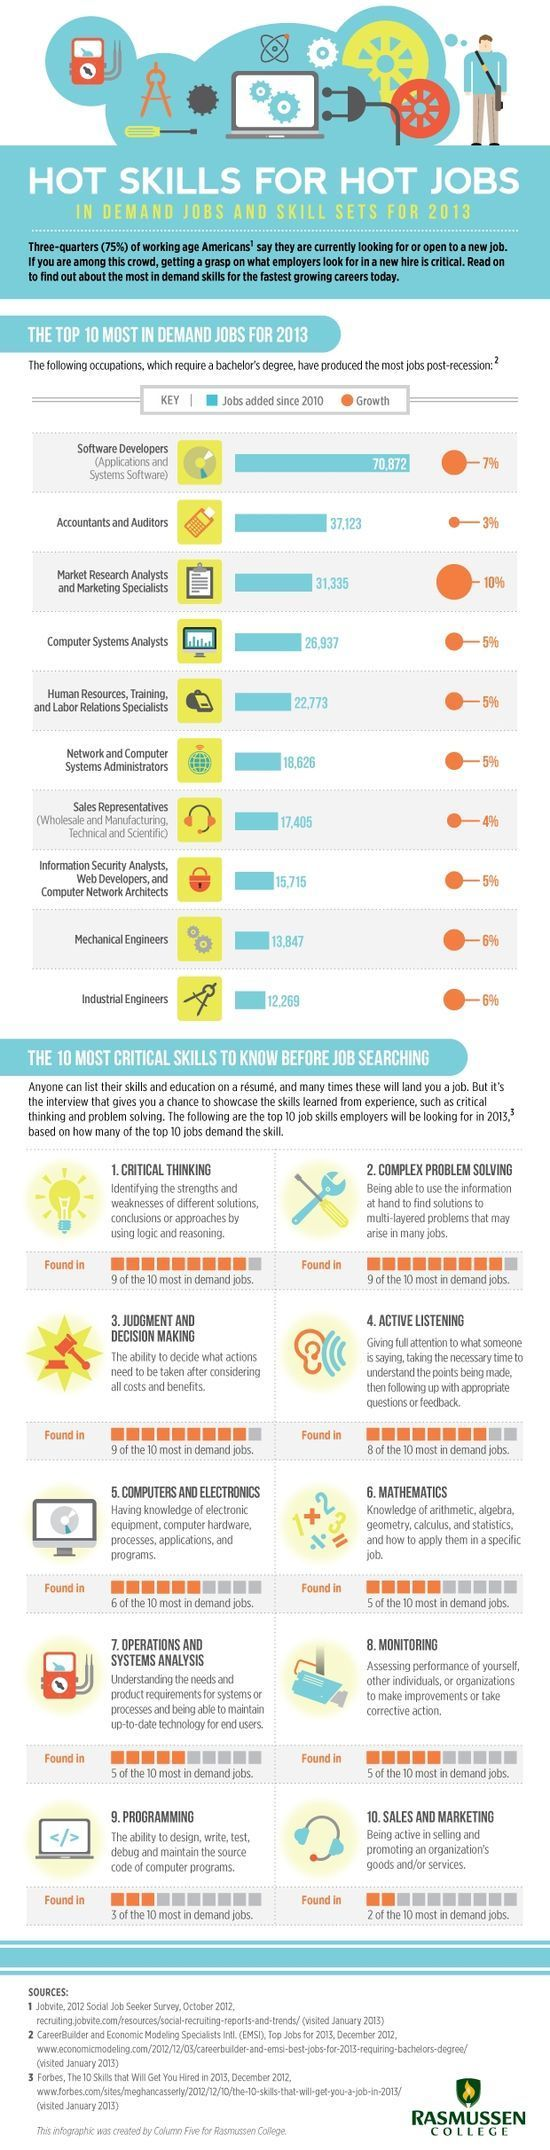 17 best images about essential soft skills in demand jobs and skill sets